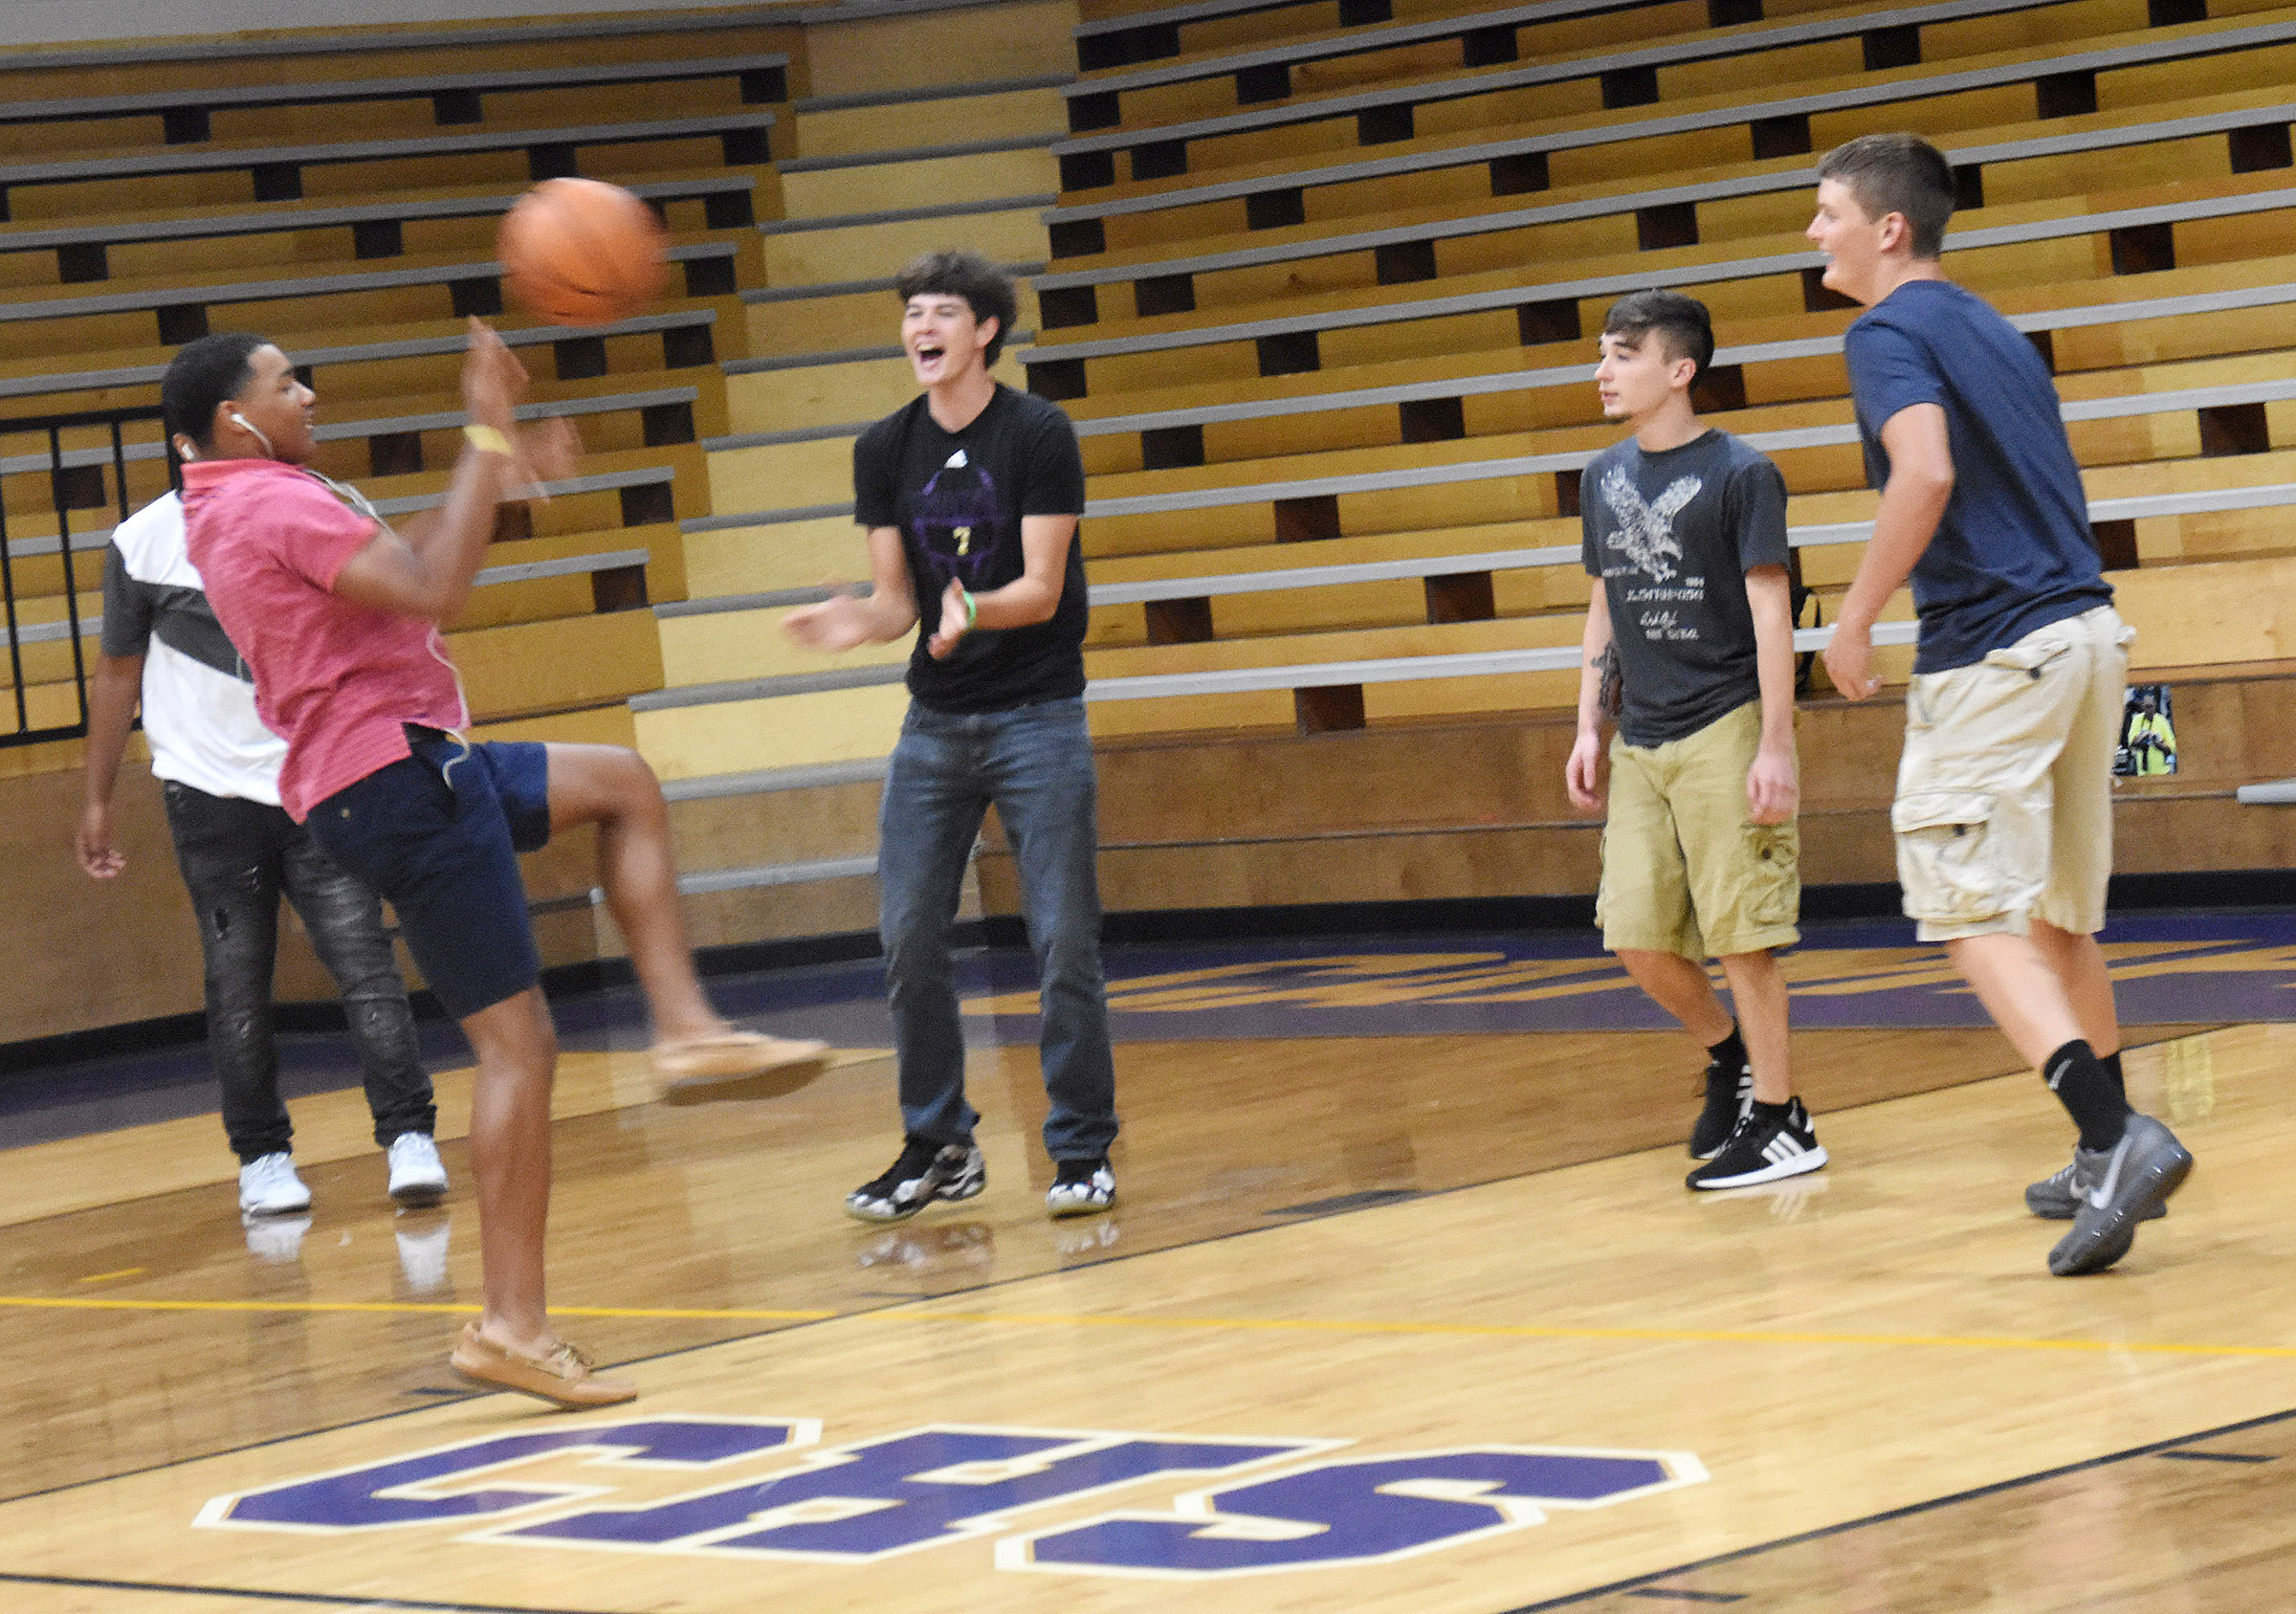 Campbellsville High School students play basketball during their lunch period.